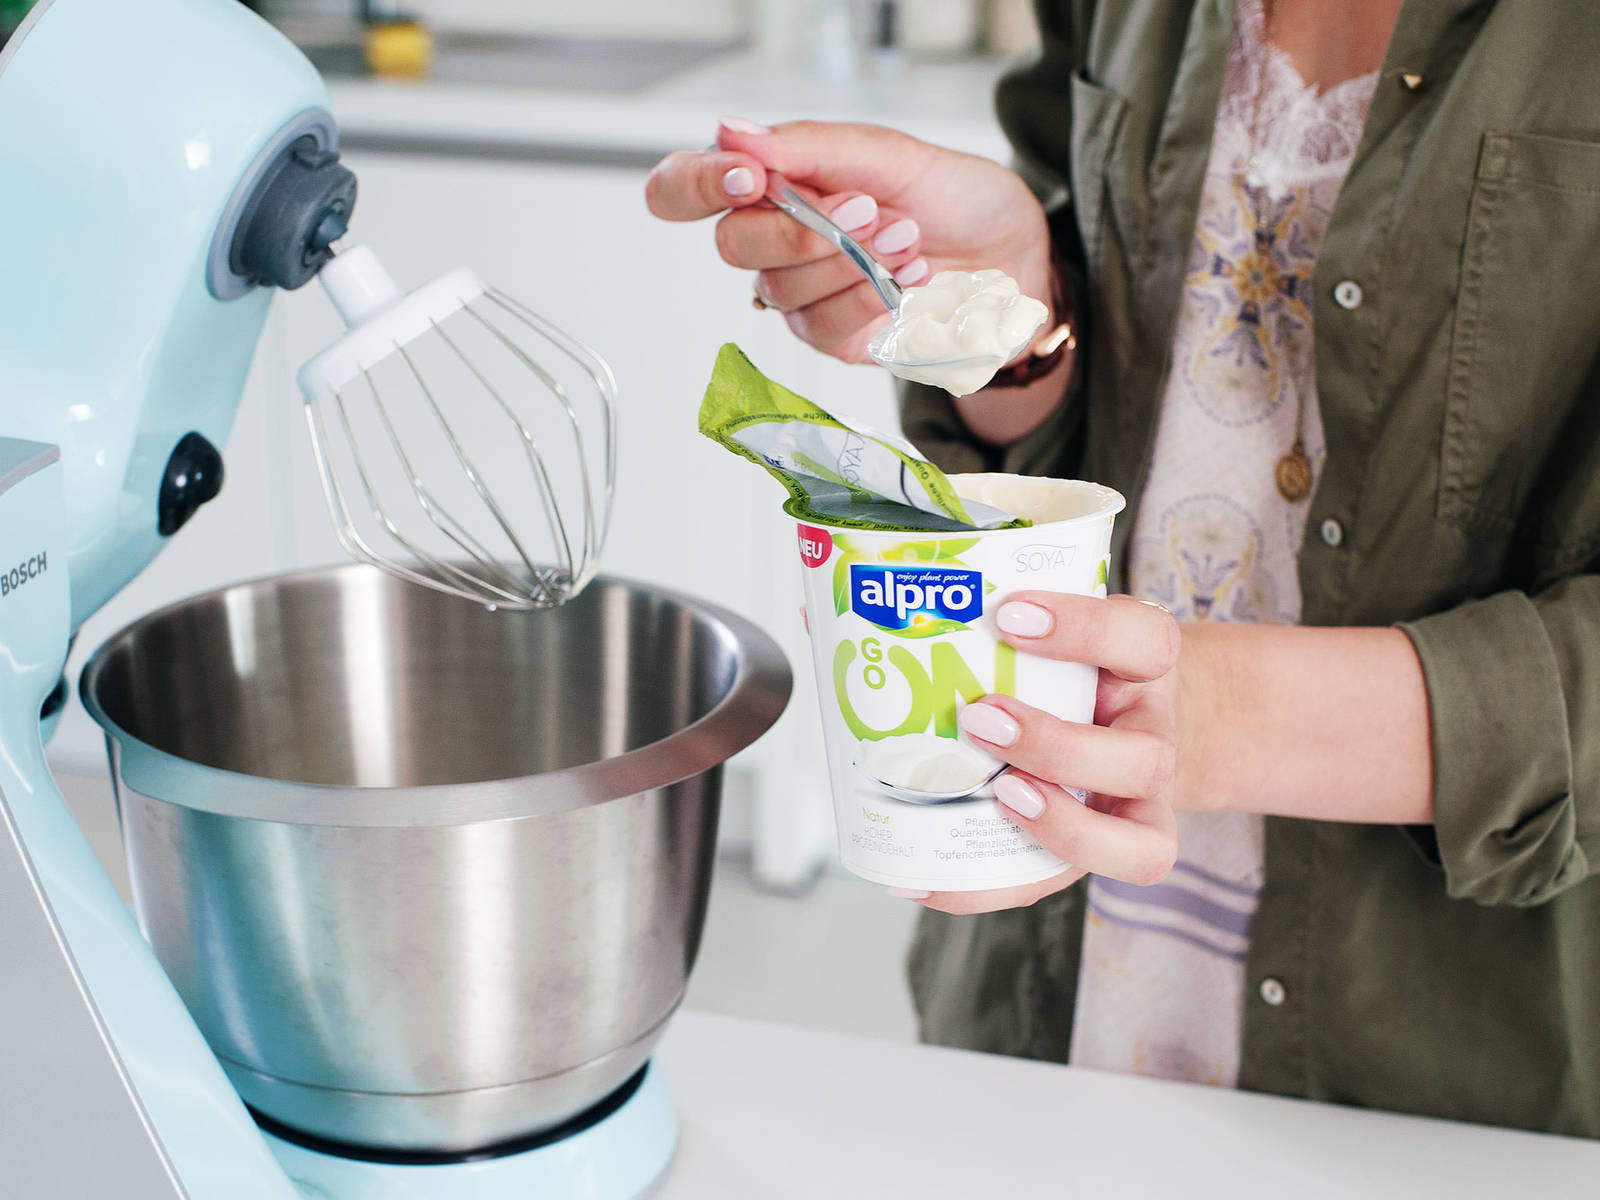 Meanwhile, prepare the cream. Mix together plant-based cream cheese alternative, agave syrup, remaining rosewater, and plant-based almond yogurt alternative until combined. Transfer cream to a piping bag fitted with a tip.